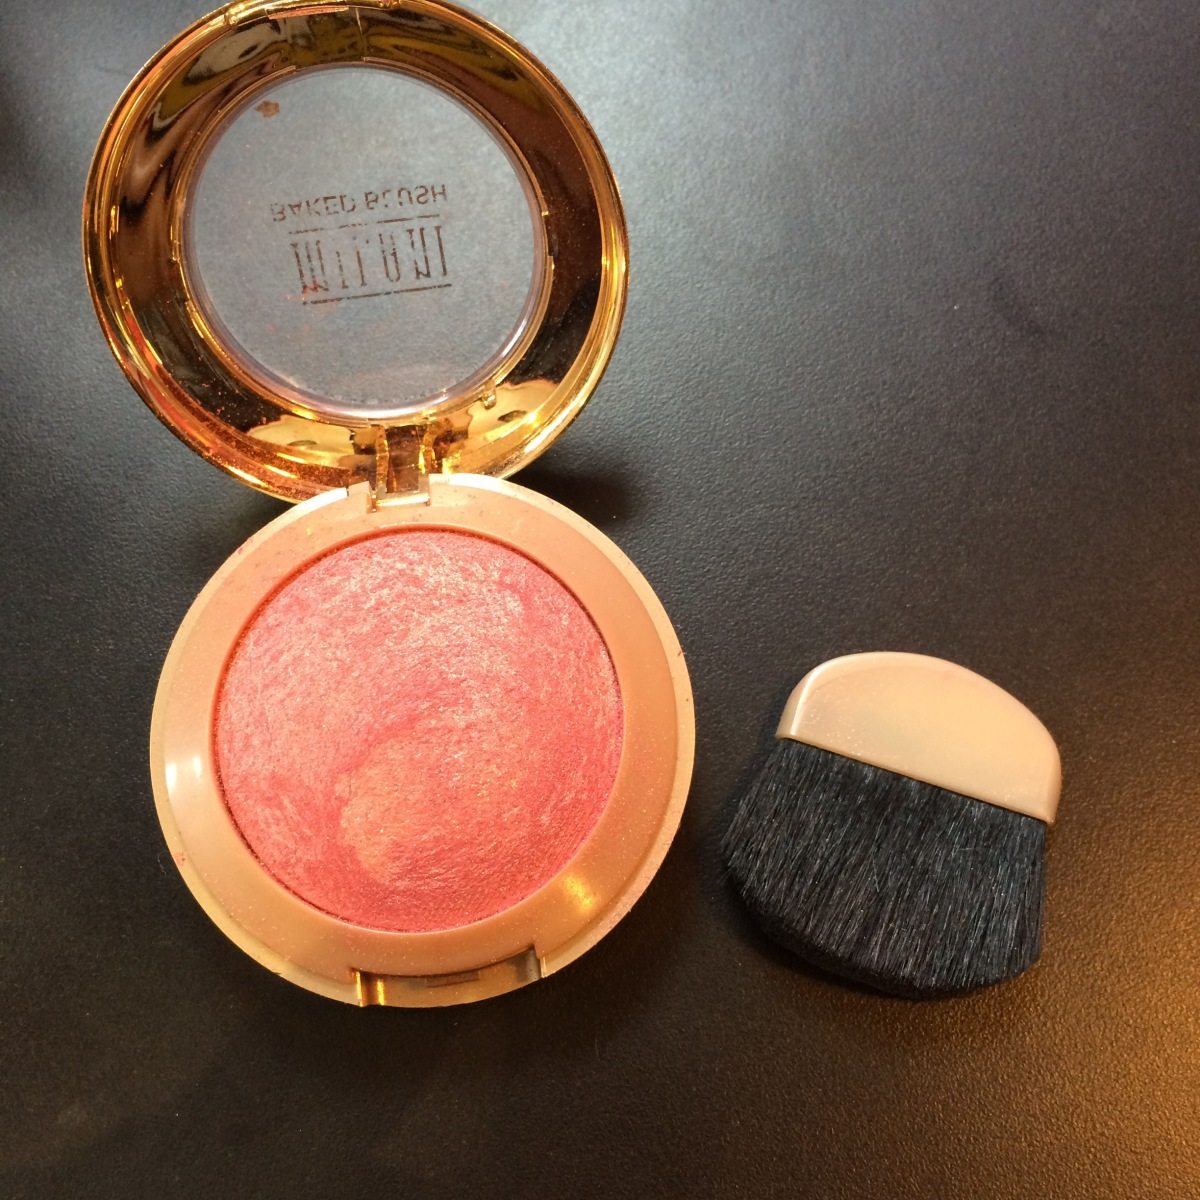 Milani Dolce Pink! The perfect pink blush!